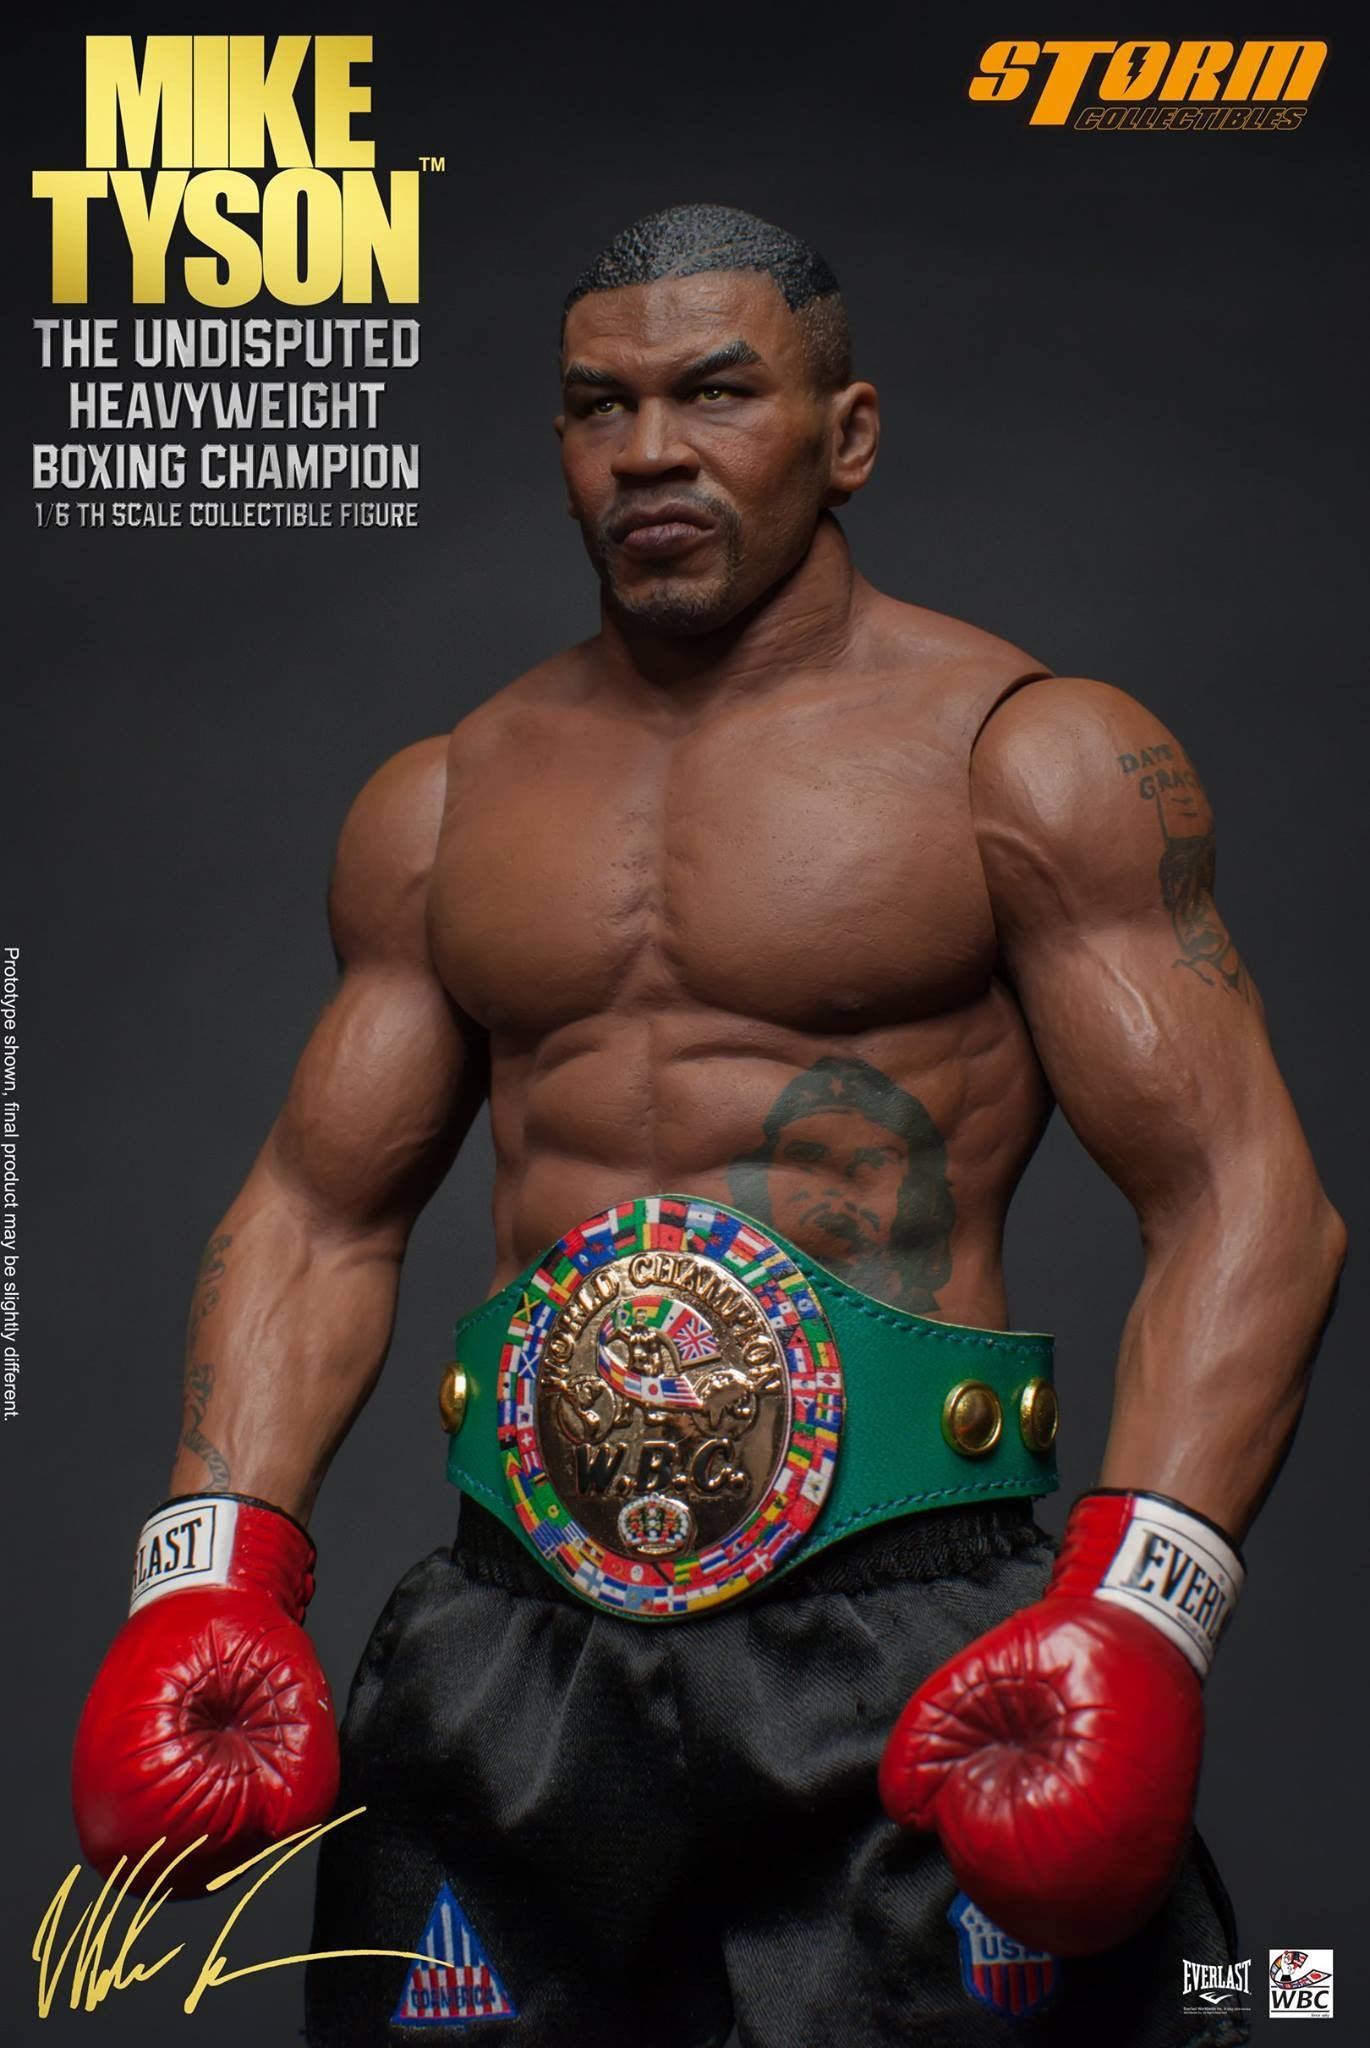 "Storm Collectibles - 1:6 Scale Collectible Figure - Mike Tyson ""The Undisputed Heavyweight Boxing Champion"" - Marvelous Toys - 4"